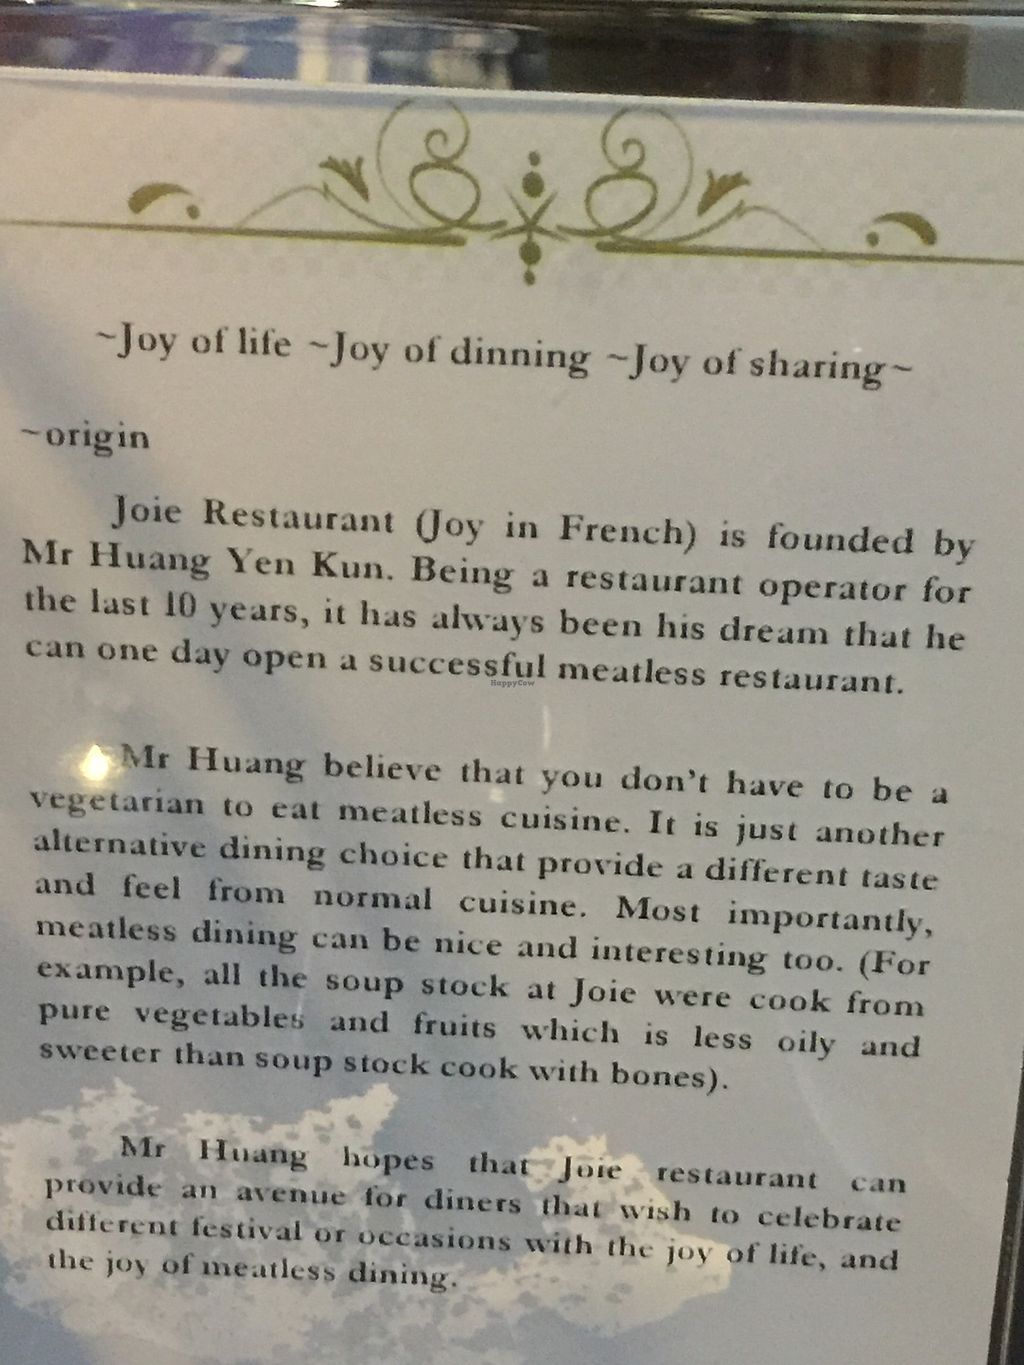 """Photo of Joie Restaurant  by <a href=""""/members/profile/WFPB52"""">WFPB52</a> <br/>Joie Story <br/> February 8, 2018  - <a href='/contact/abuse/image/54966/356441'>Report</a>"""